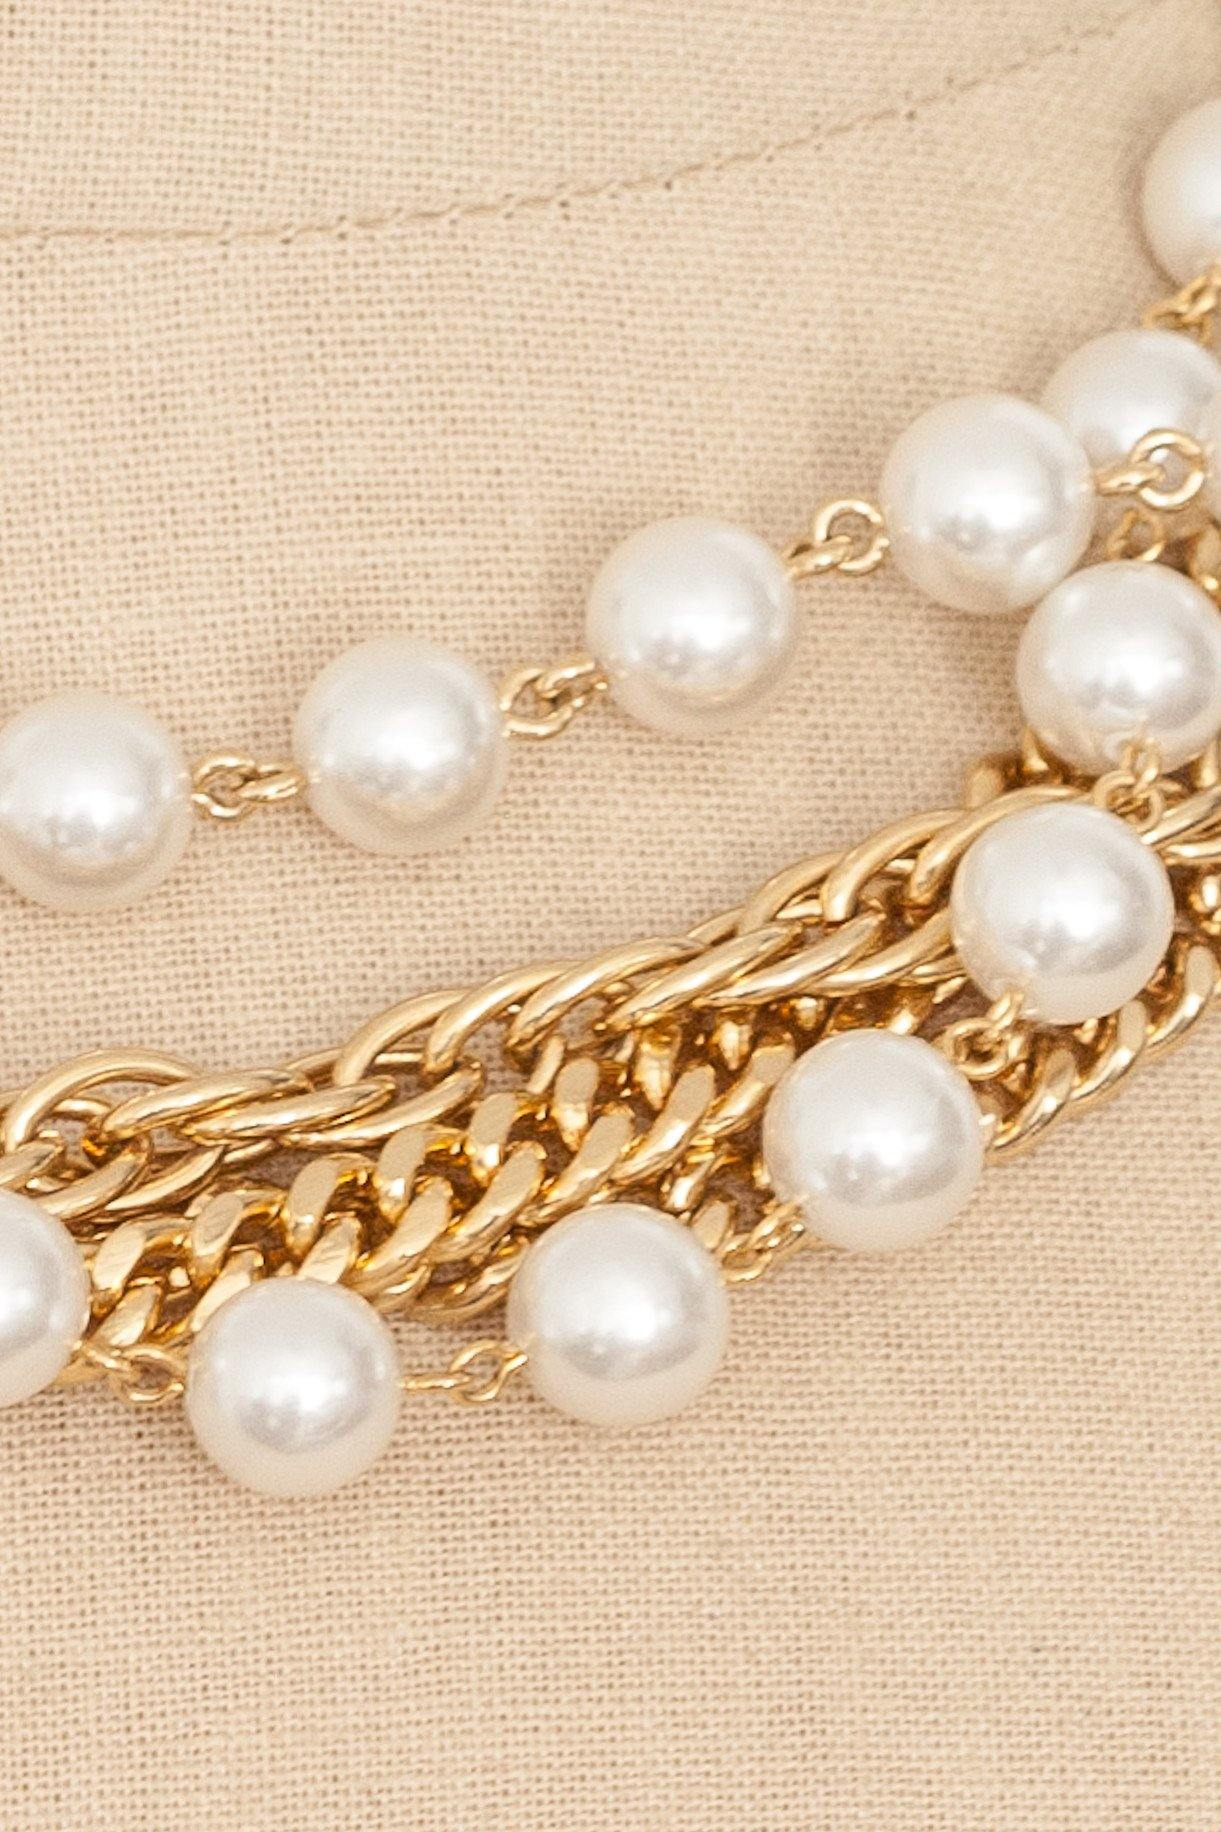 80's__Vintage__Pearl and Chain Necklace